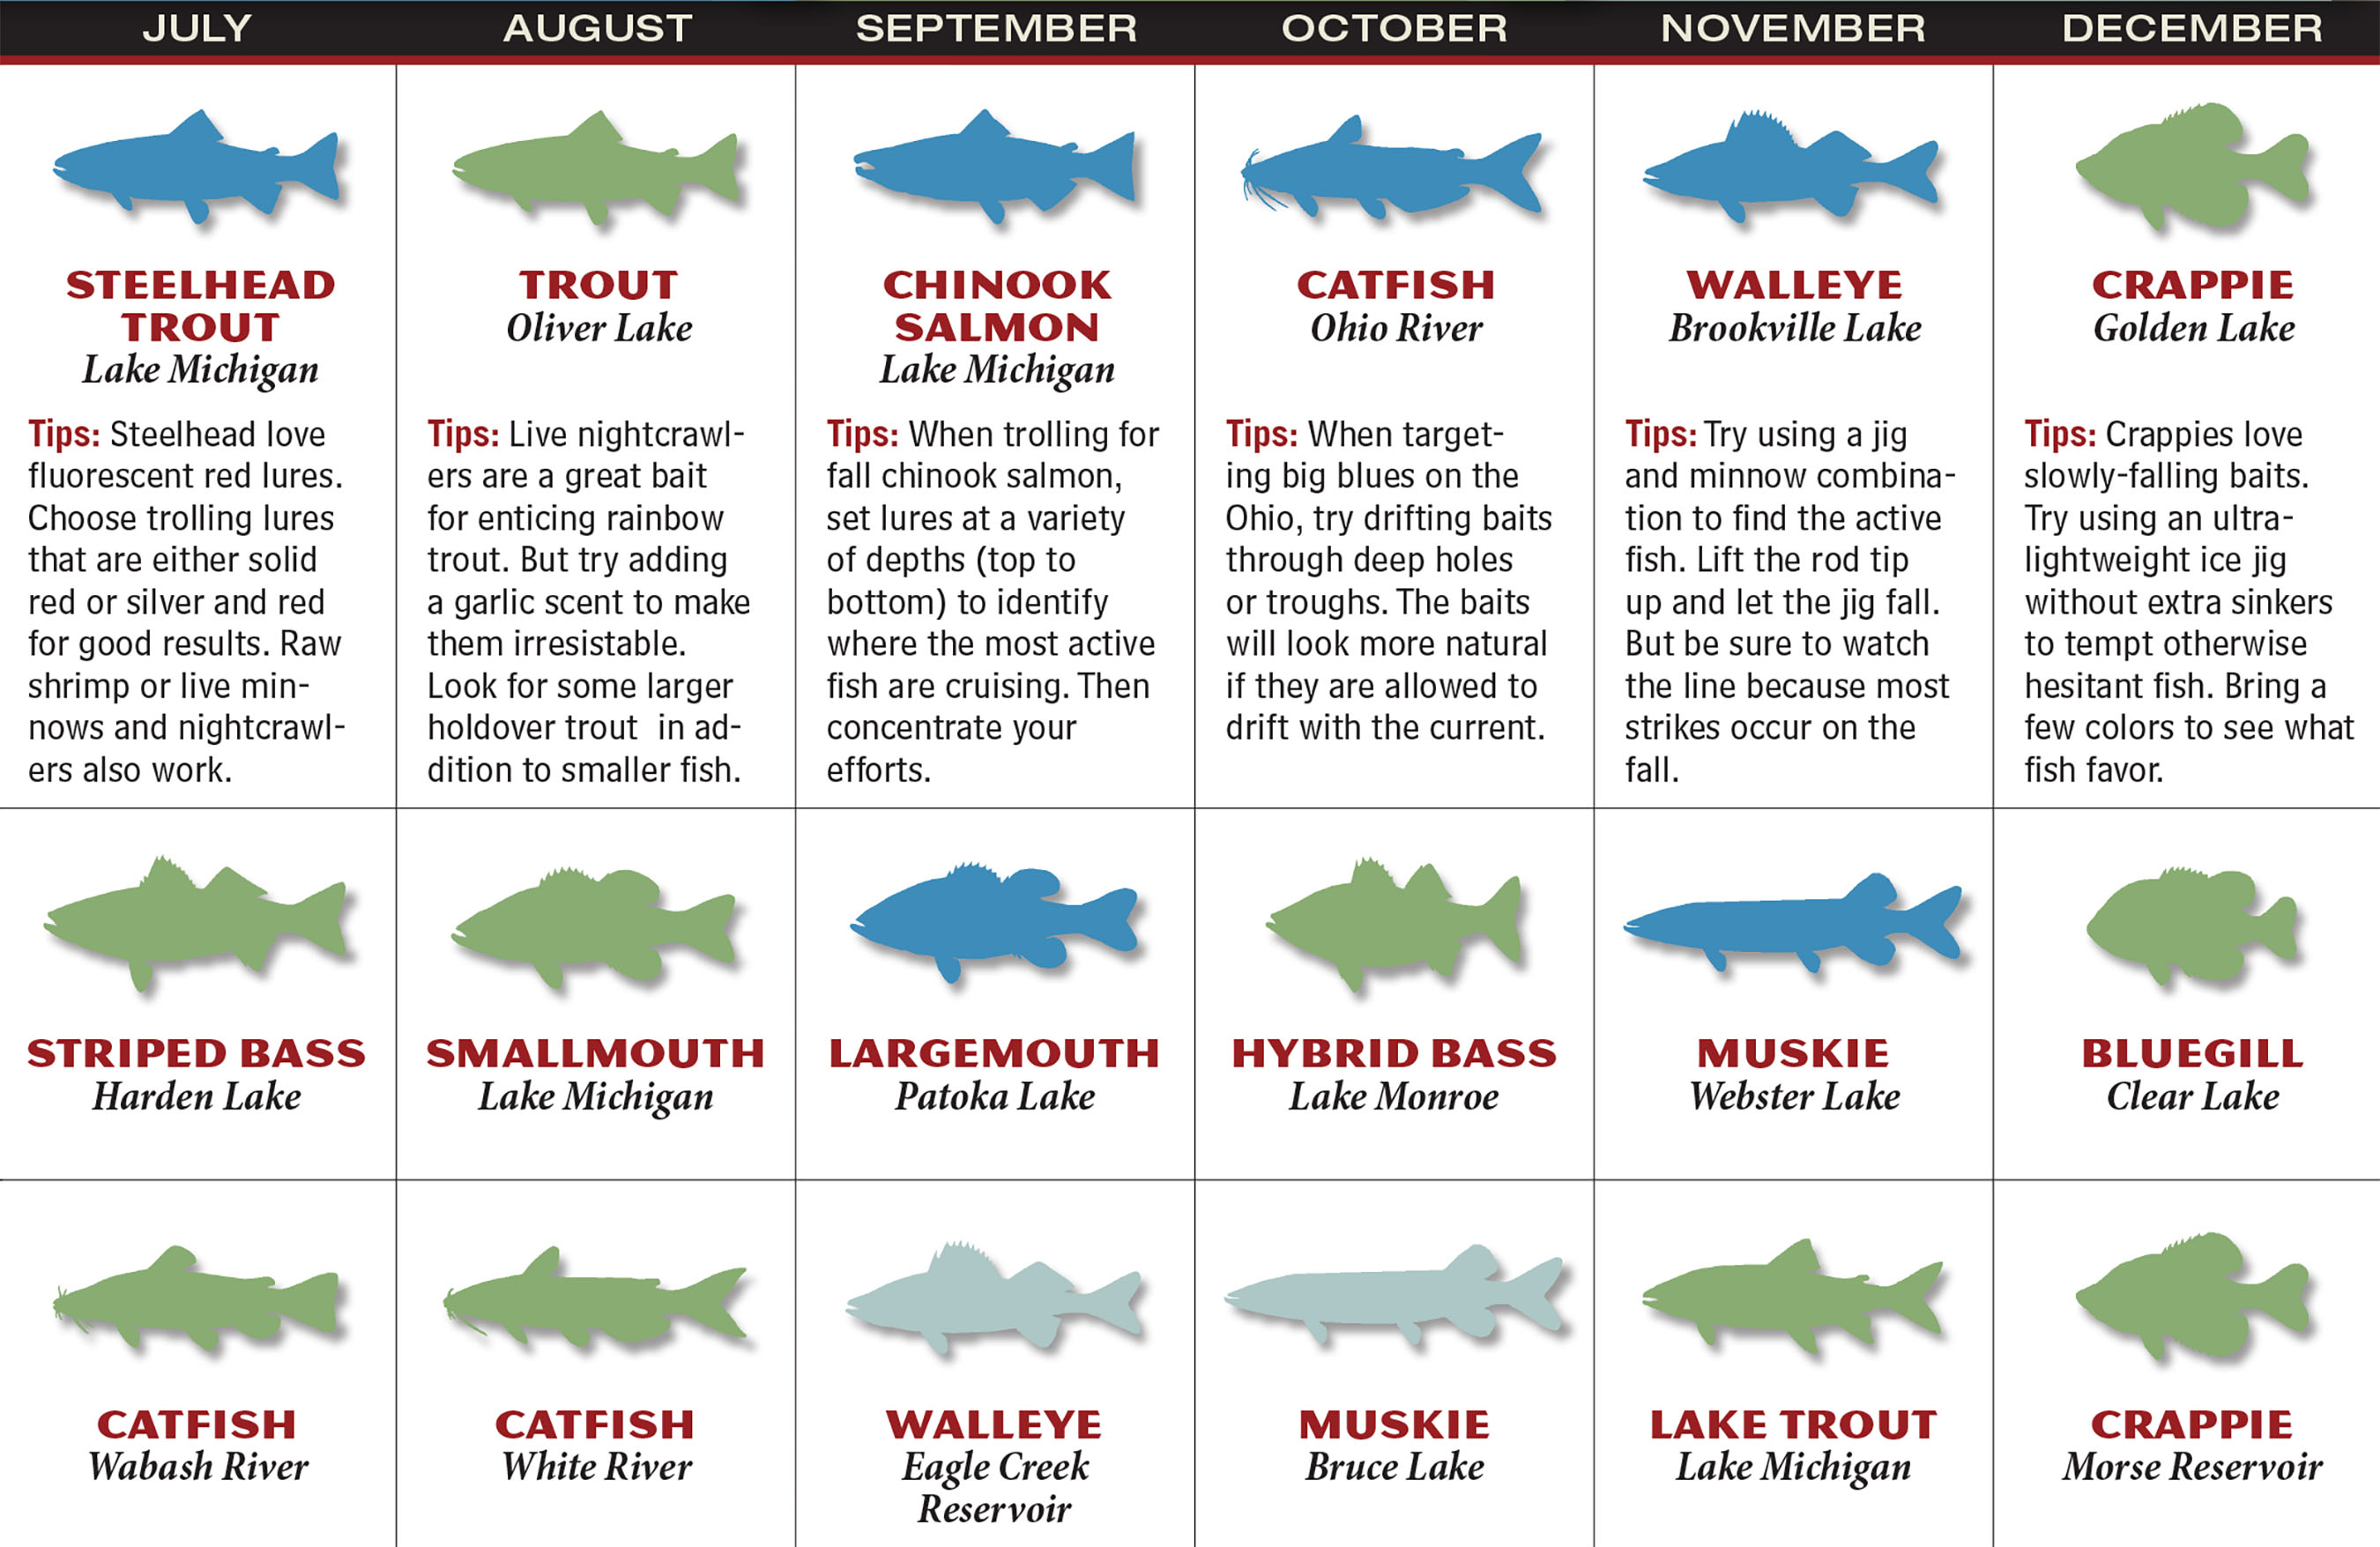 IN Fishing Forecast Calendar P2